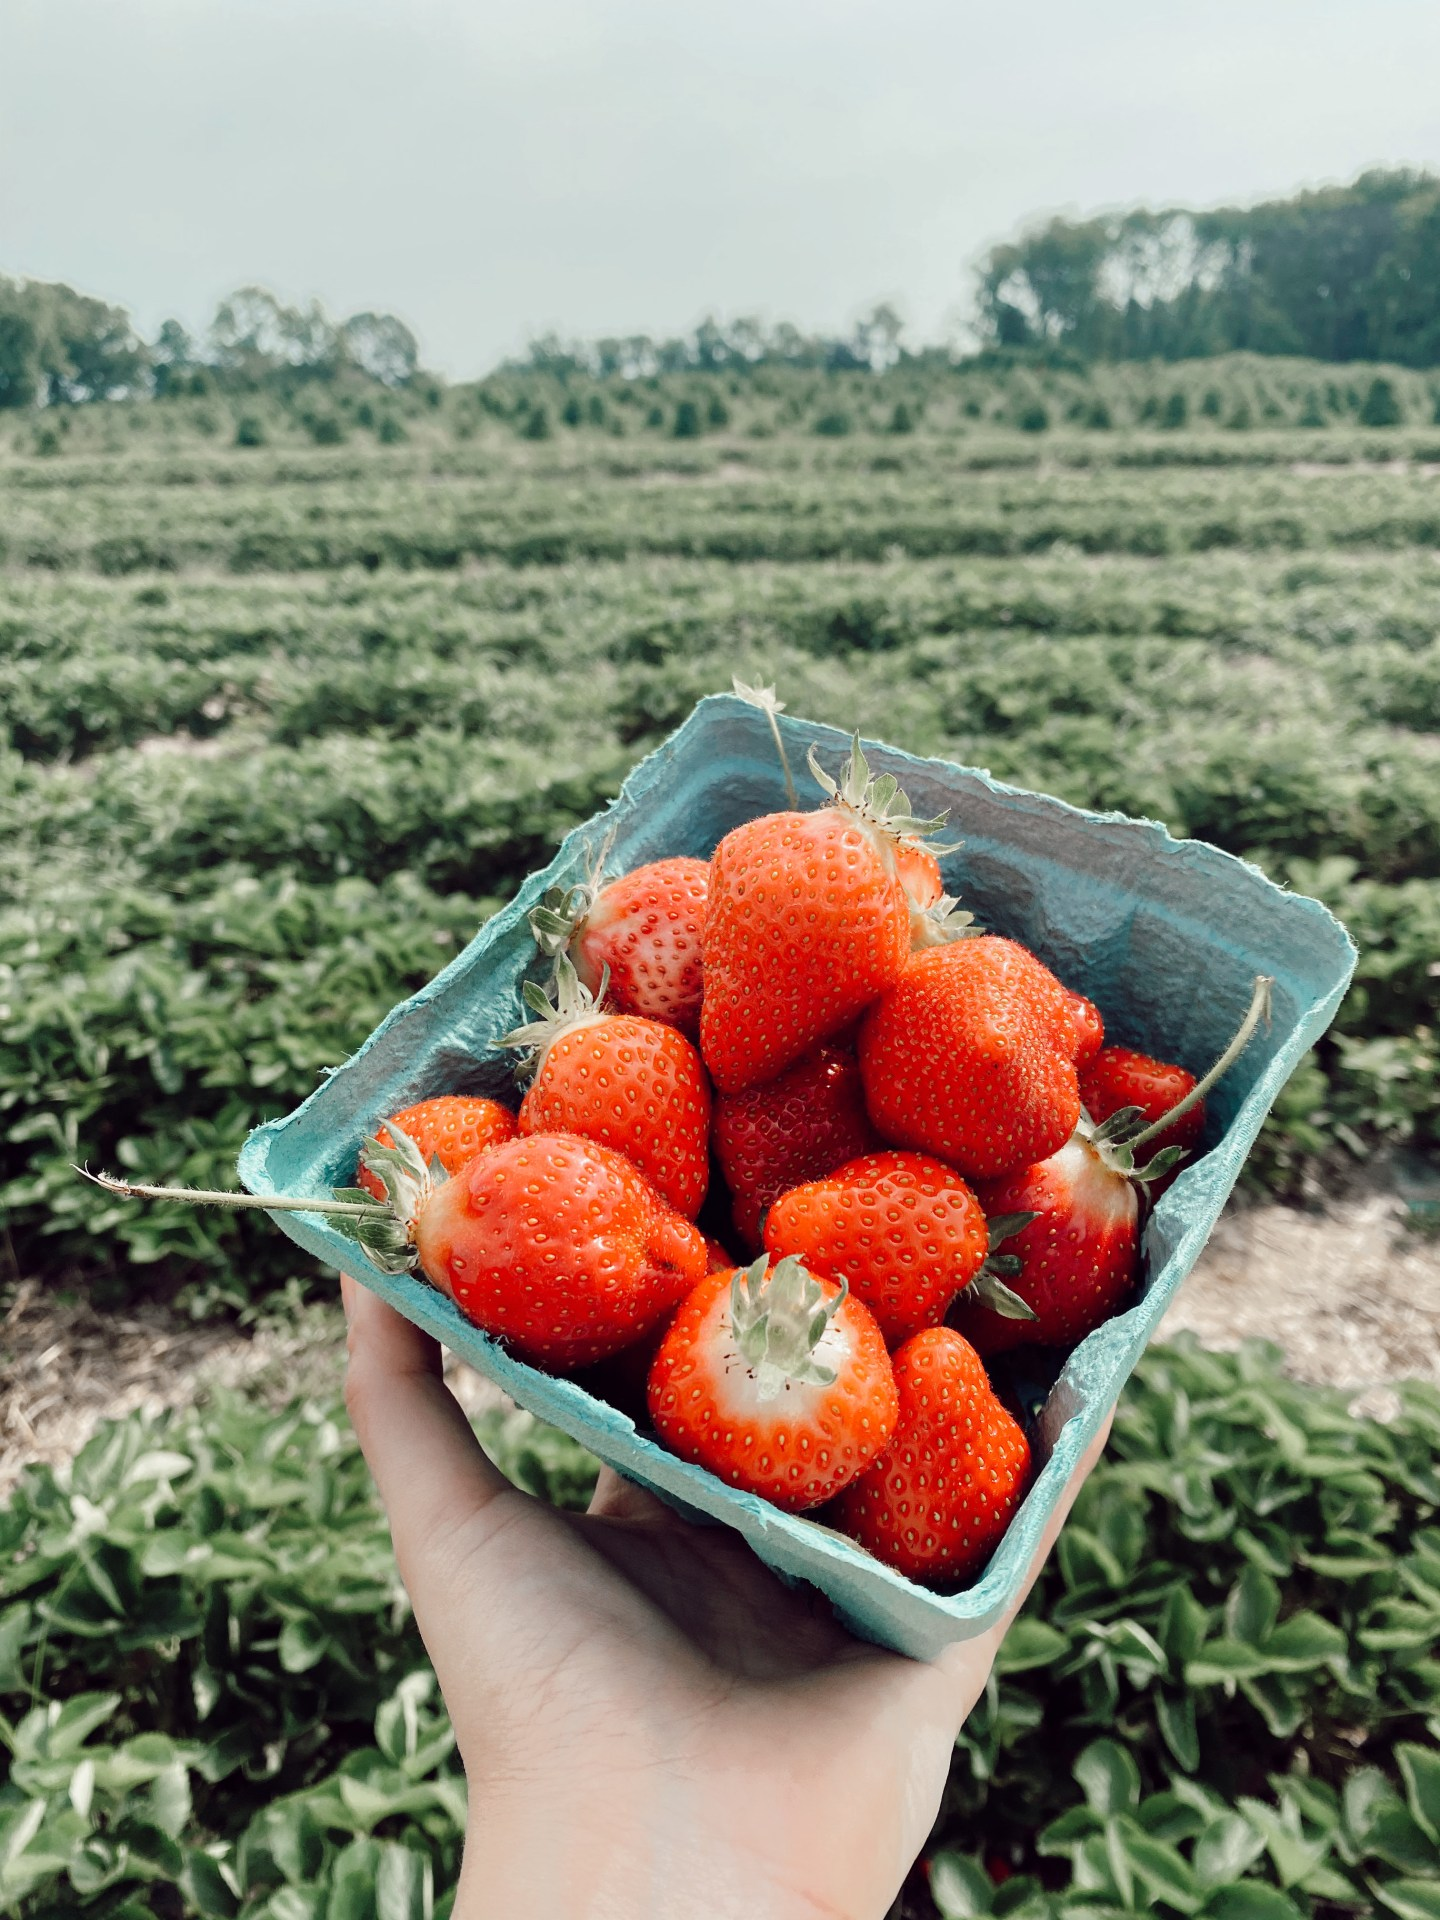 Blogger Chocolate & Lace shares tips for visiting Linvilla Orchards in Pennsylvania.